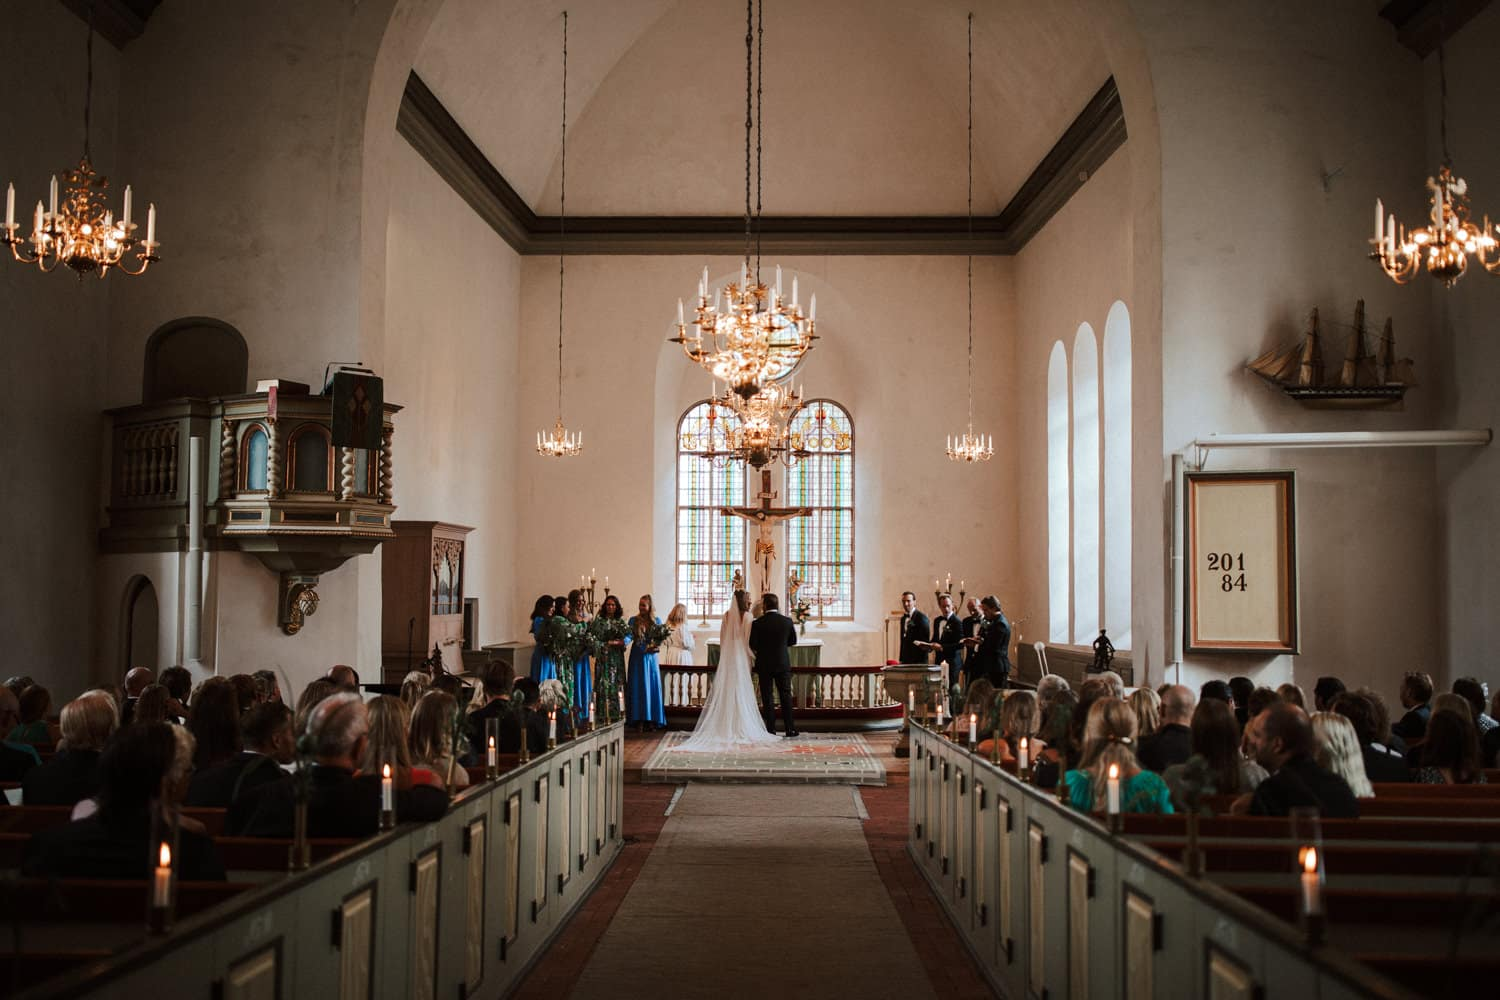 The wedding couple is standing at the end of an aisle in front of the altar in the church.